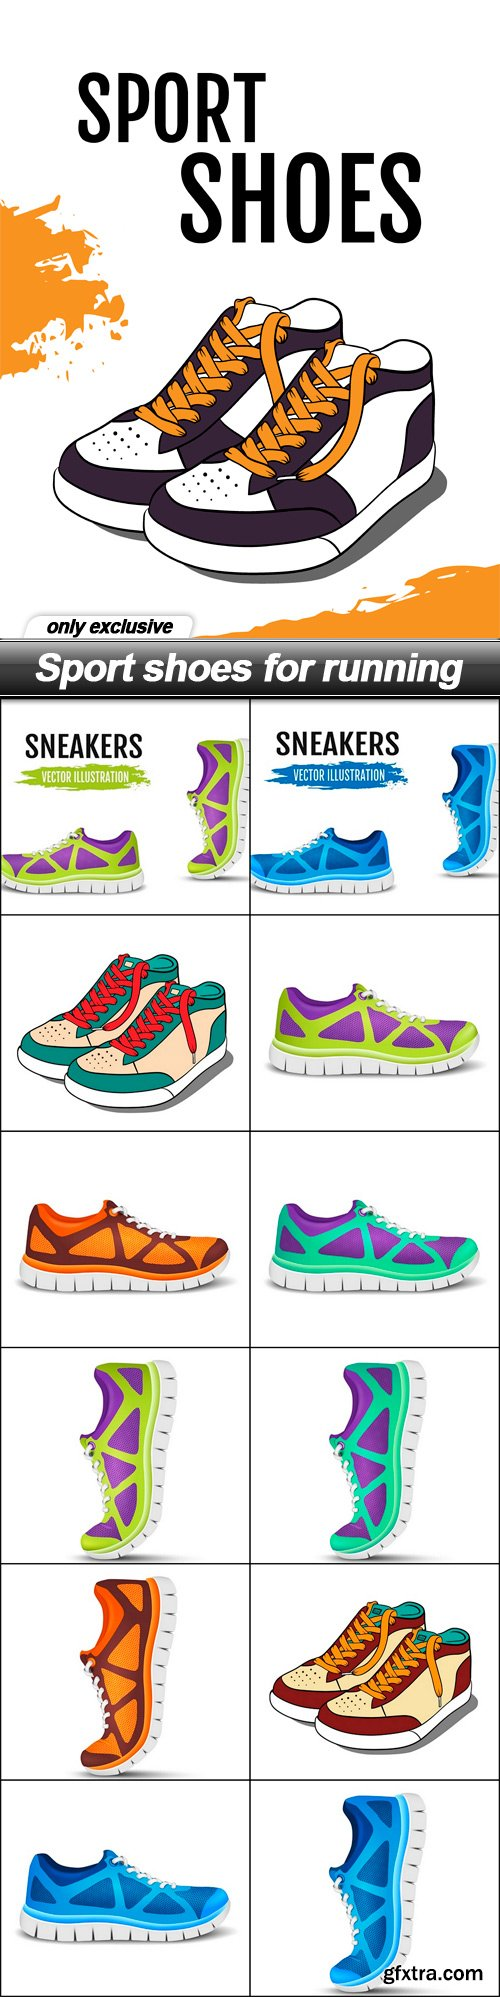 Sport shoes for running - 13 EPS